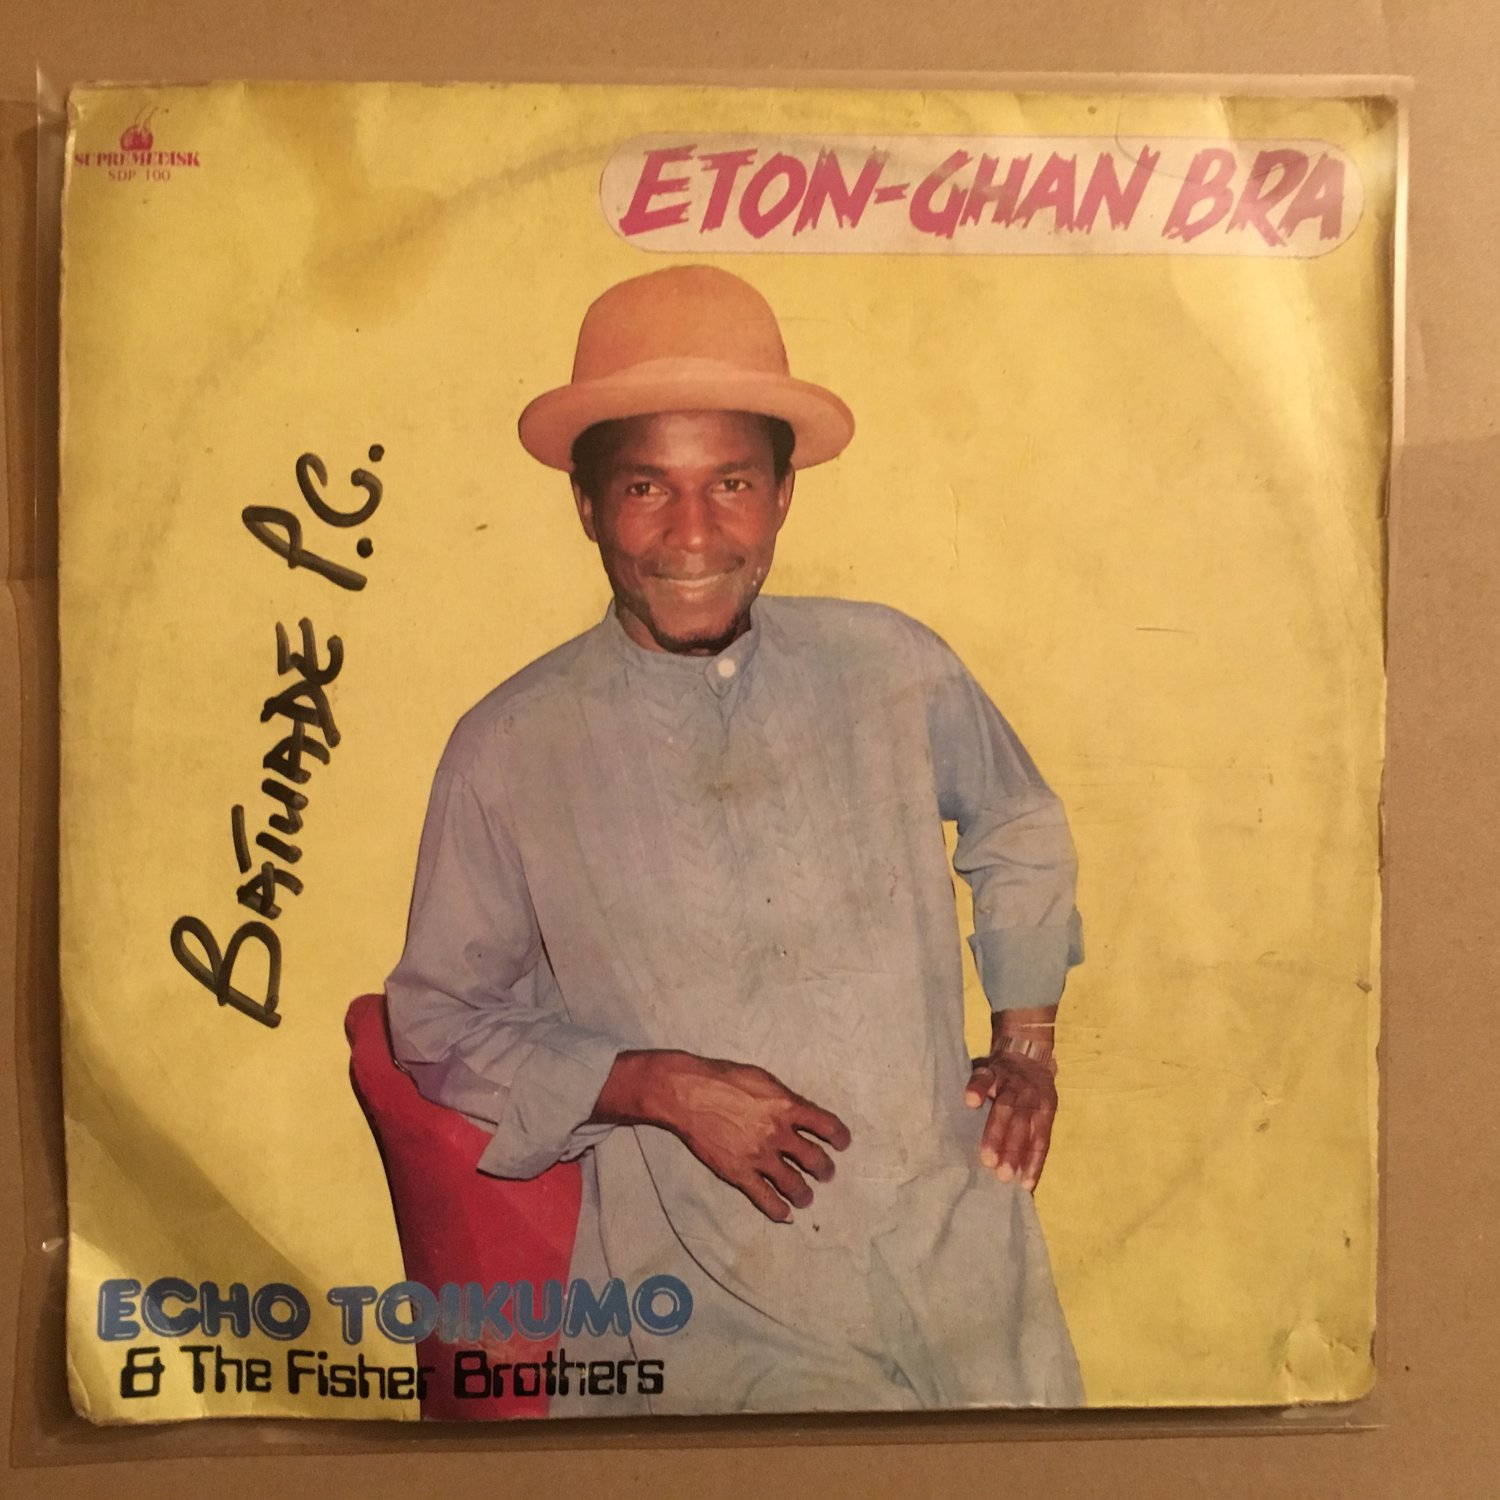 ECHO TOIKUMO & HIS FISHER BROTHERS BAND LP eton ghan bra  NIGERIA  mp3 LISTEN